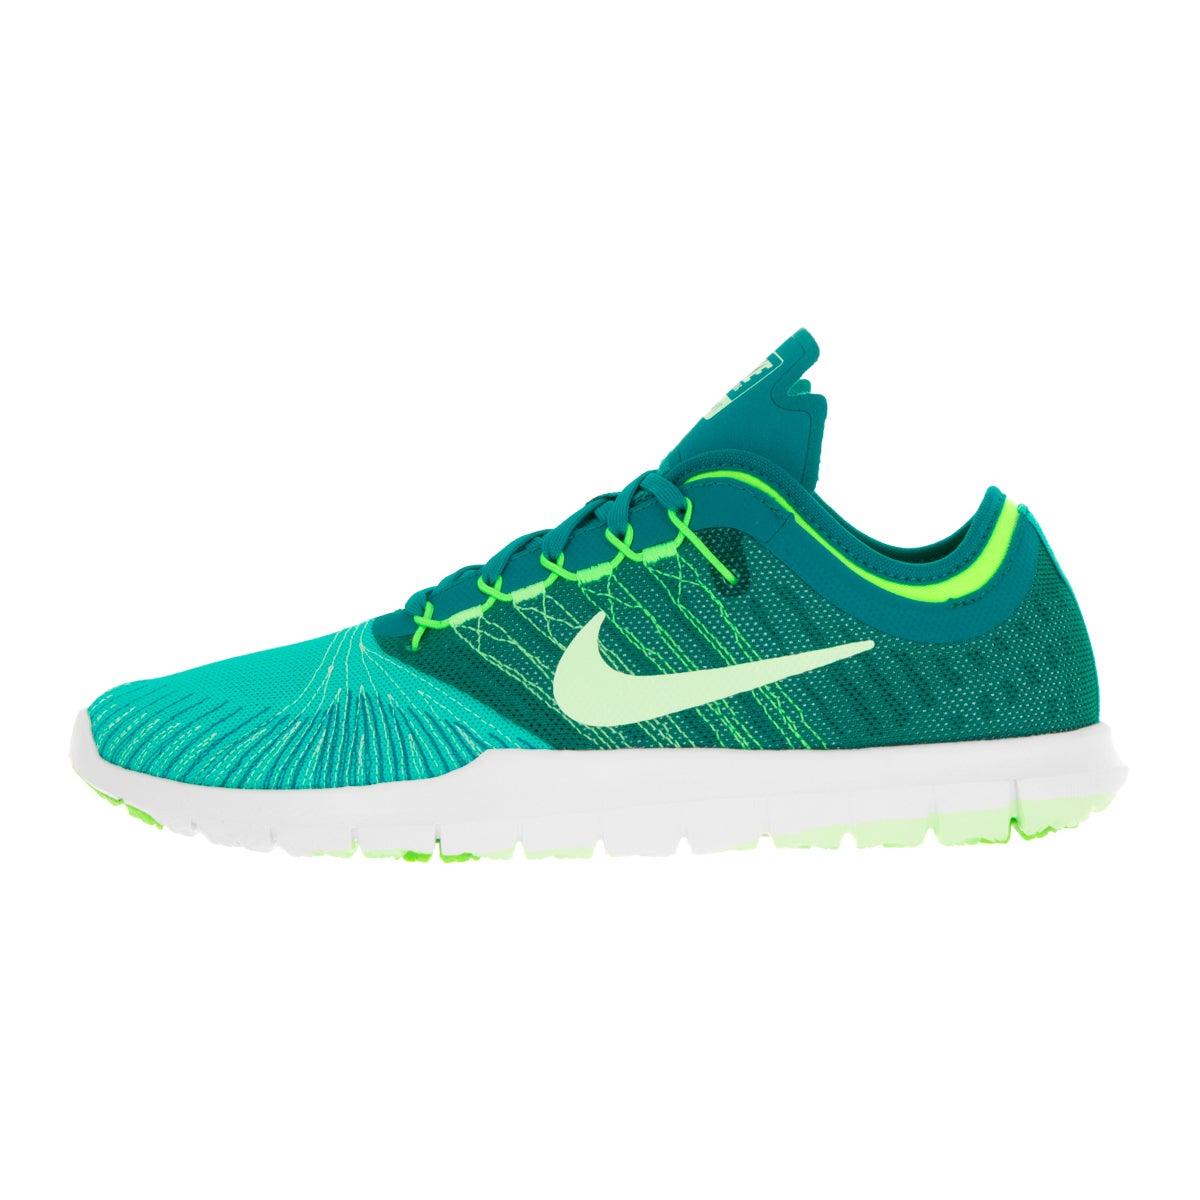 Nike Women's Flex Adapt Tr Green and White Textile Training Shoes - Free  Shipping Today - Overstock.com - 20046509